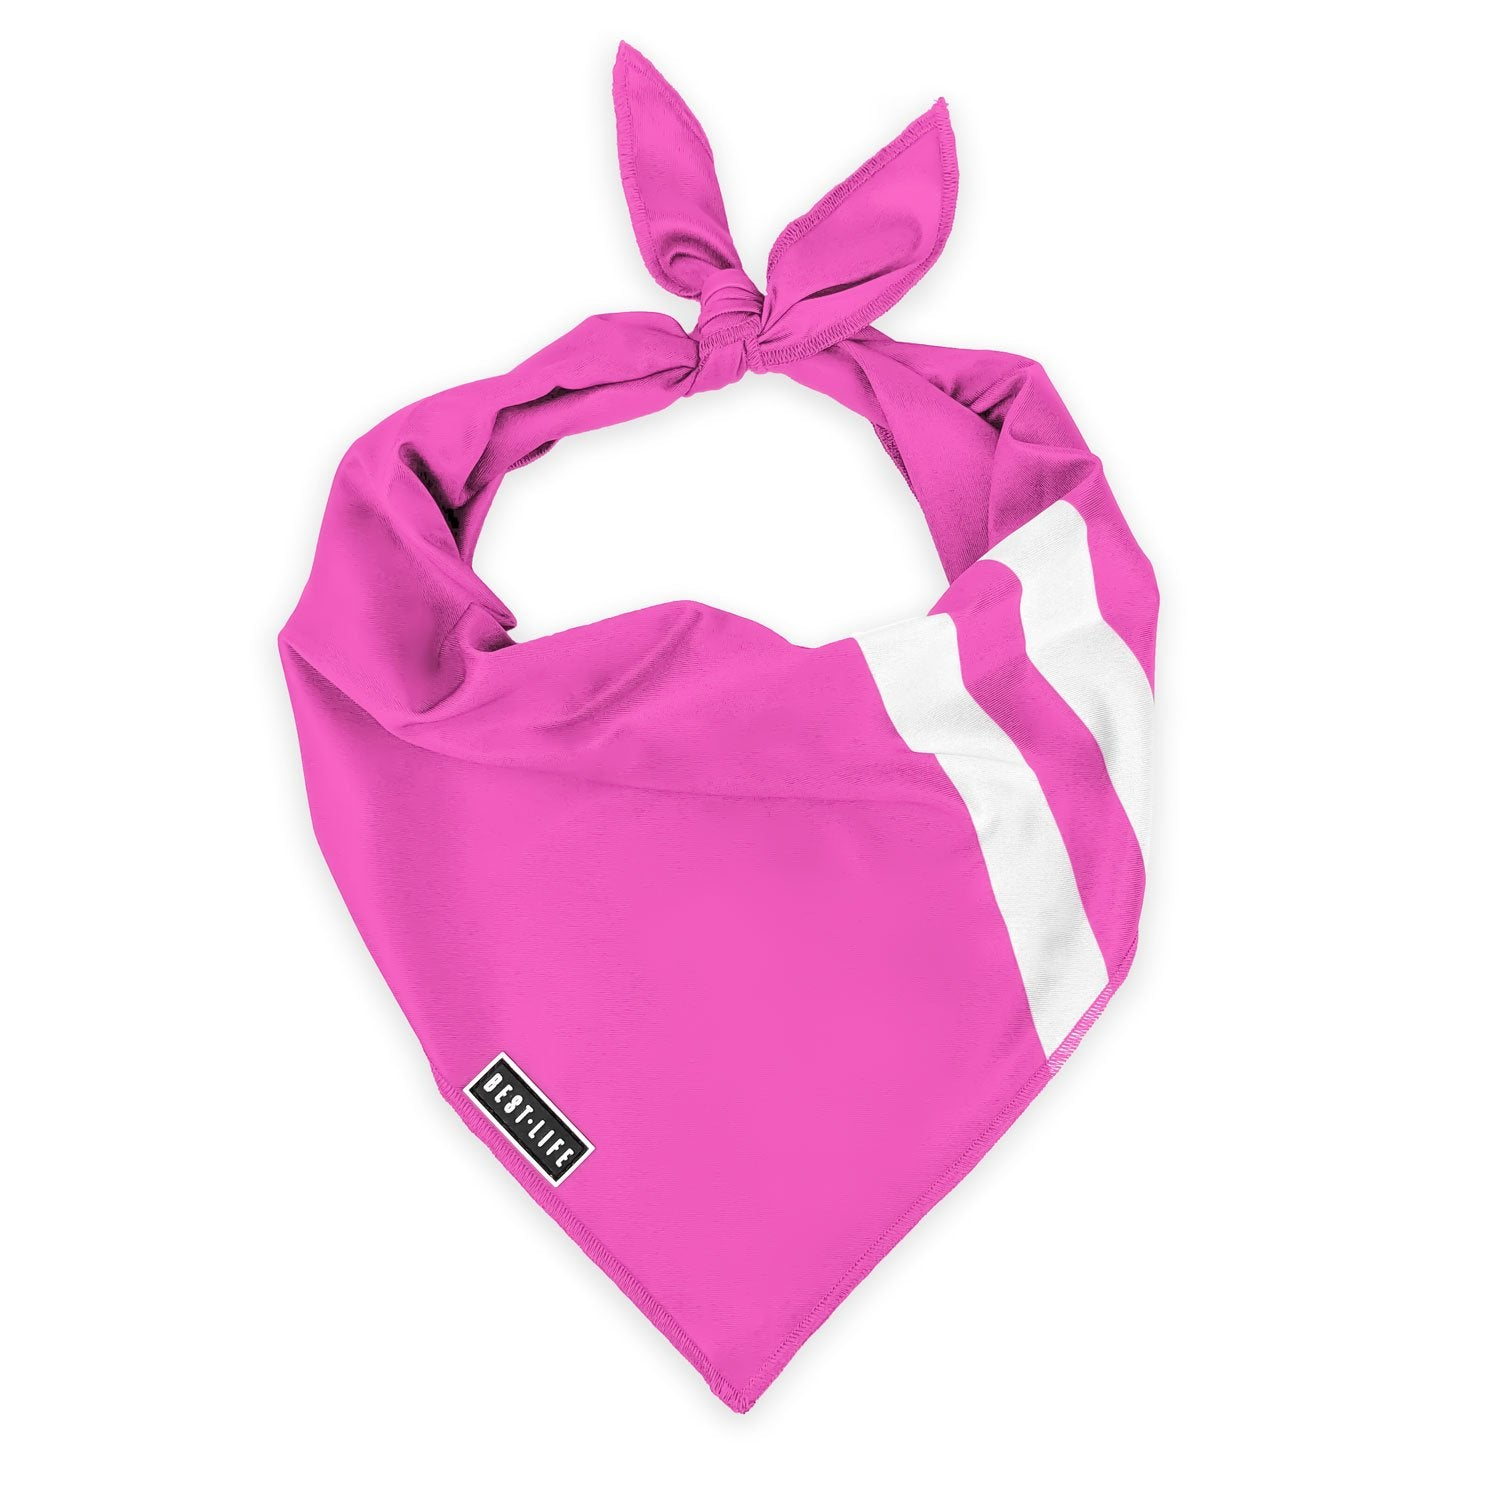 Perfect Pink - Bandana bandana Best Life Leashes | The Leash For Rescue Dogs